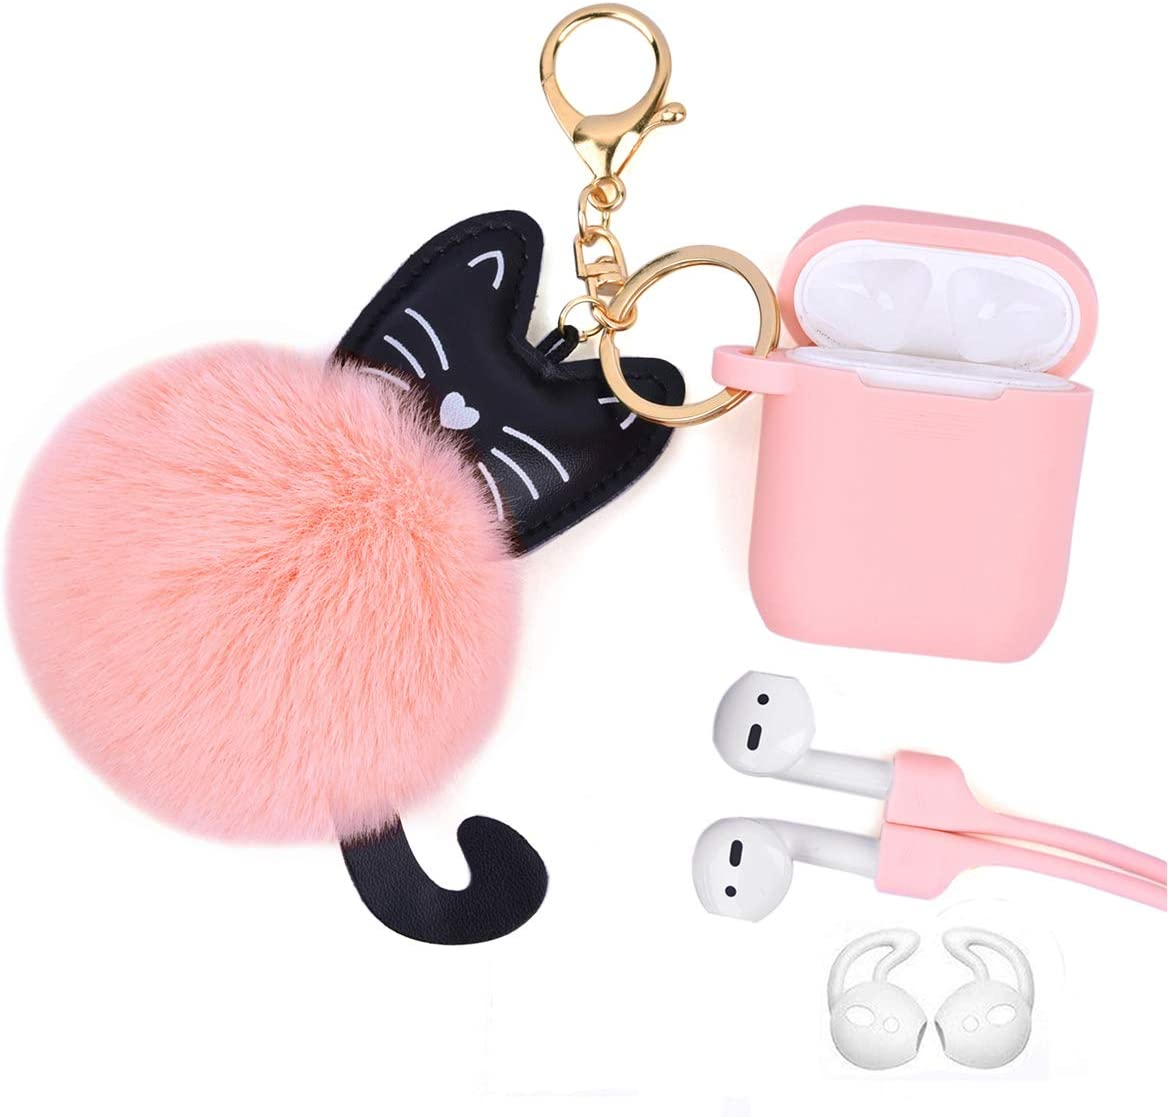 Airpods Case - Airspo Case for Airpods Silicone Case Cover Compatible with Apple Airpods 1/2 Protective Skin with Fur Ball Keychain/Anti-Lost Strap/Ear Hooks (Peach Pink)